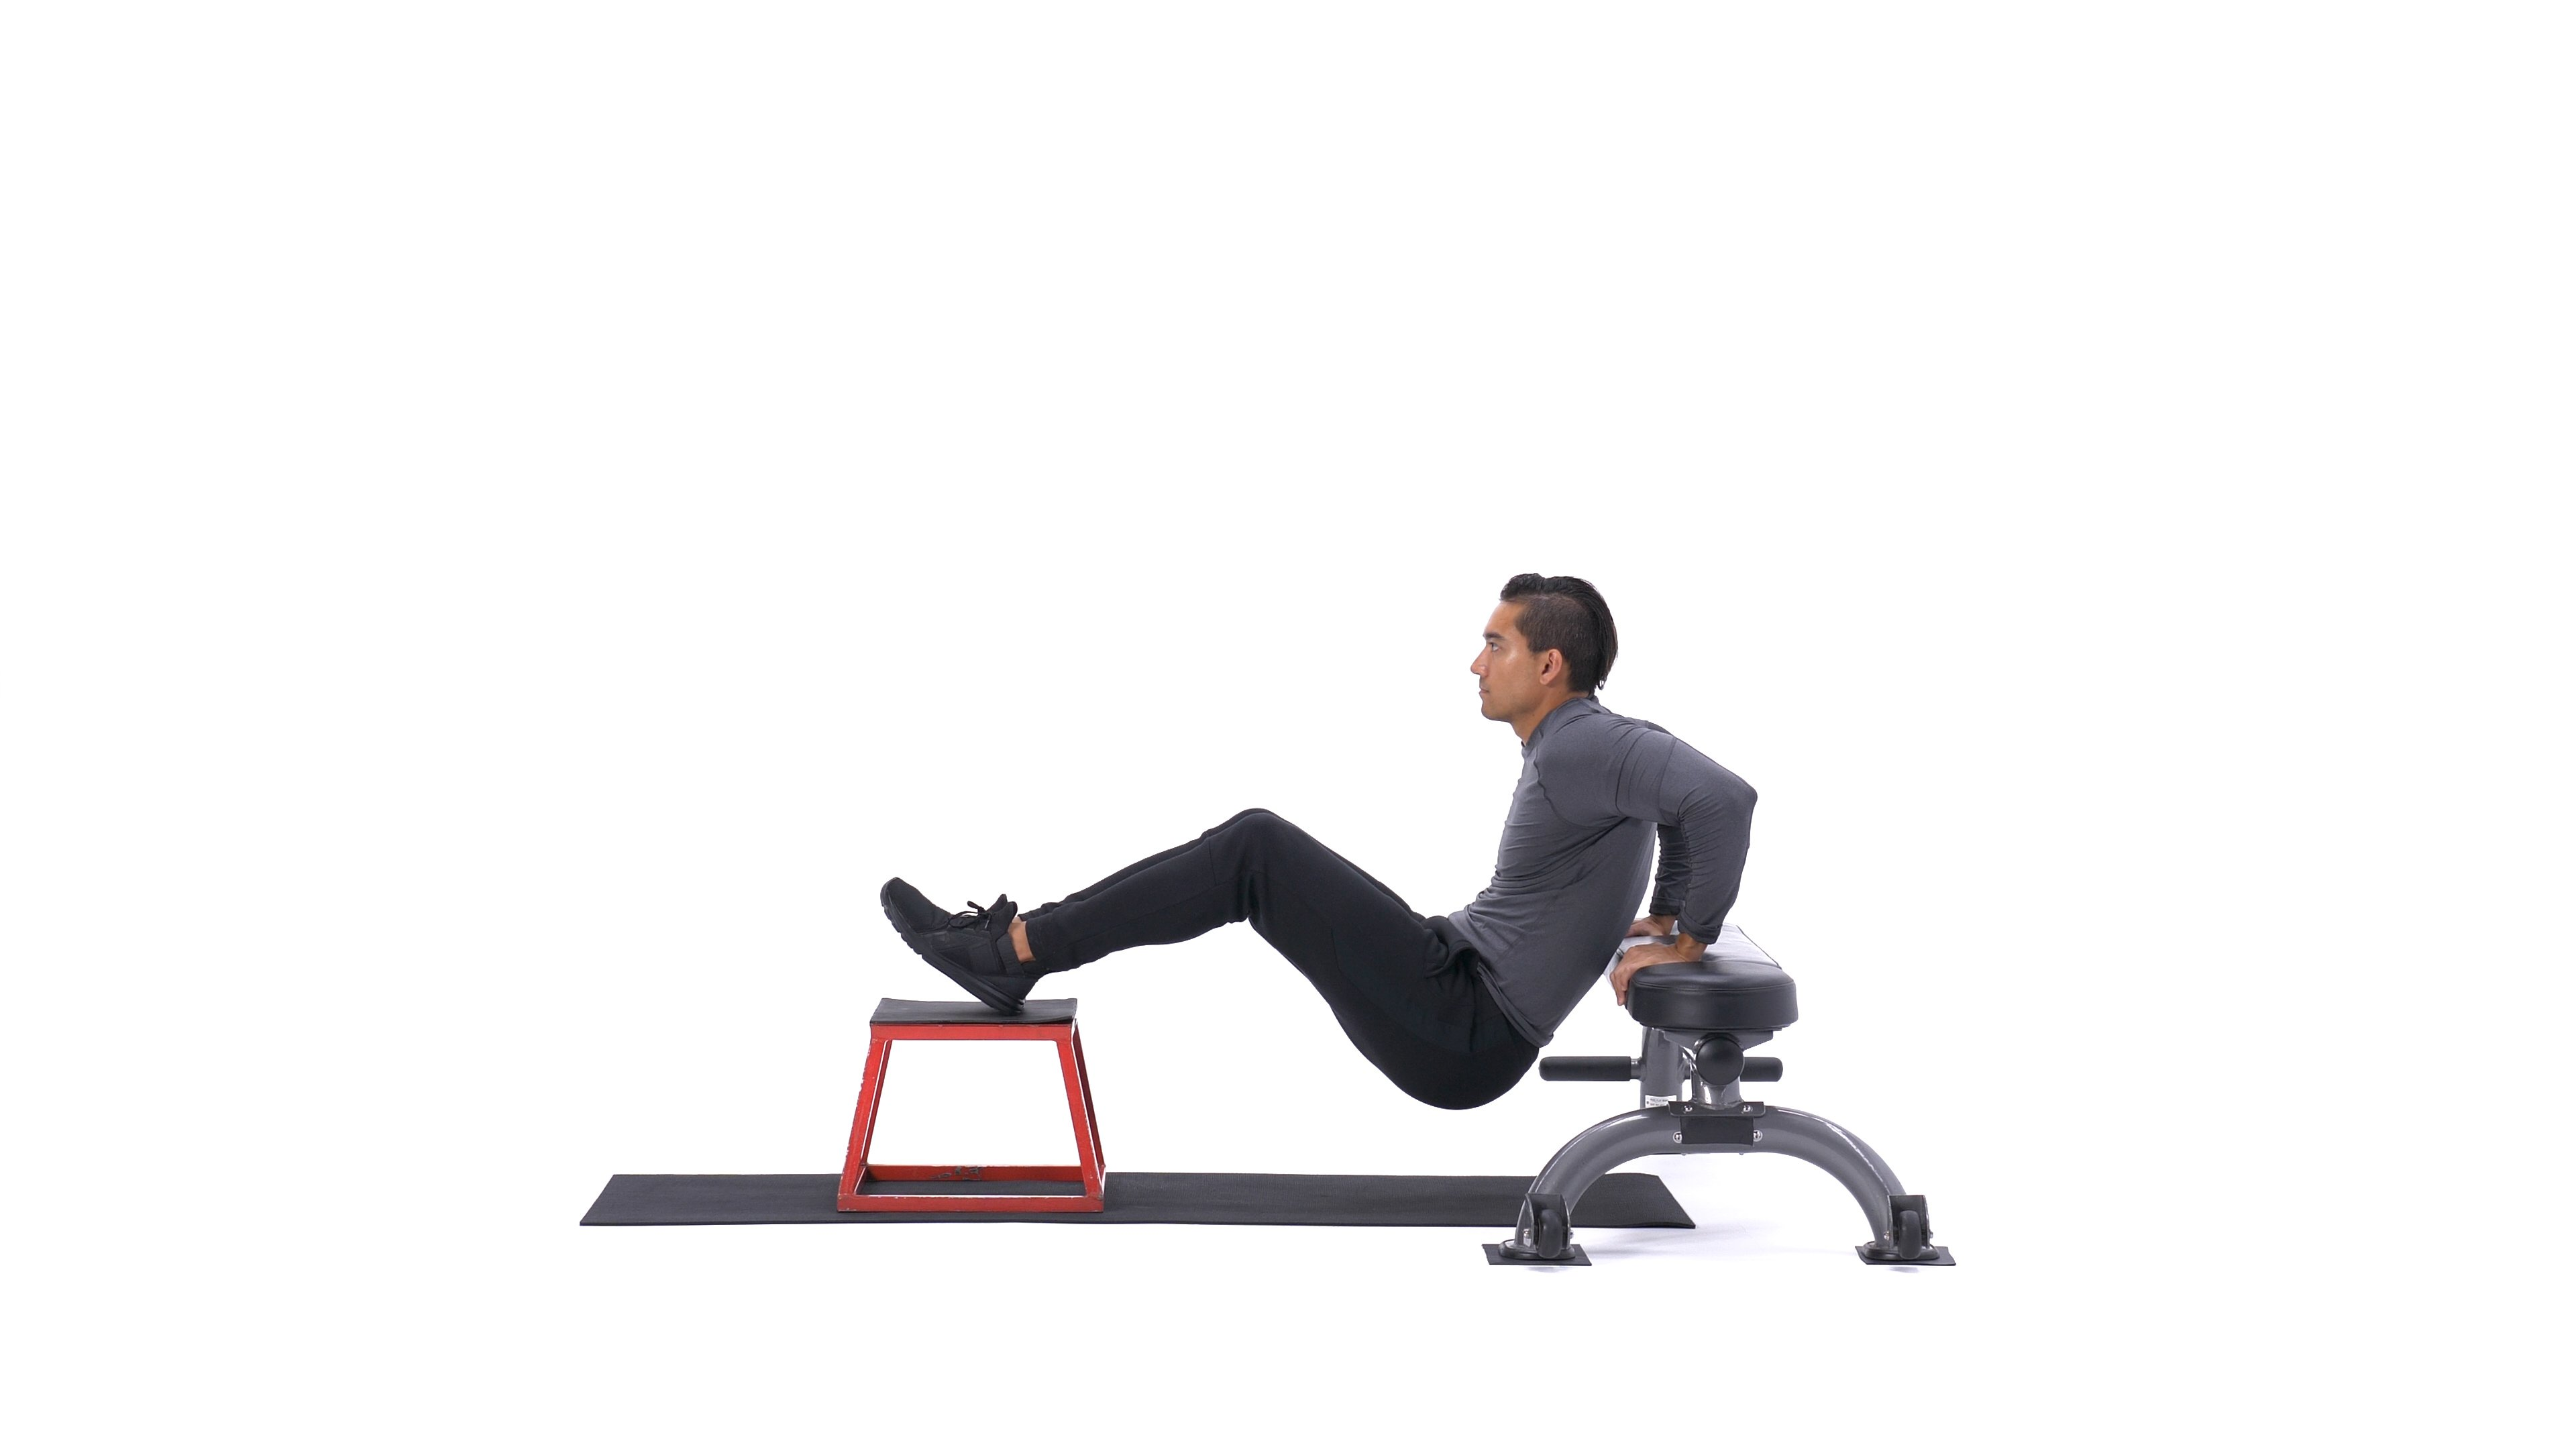 Feet-elevated bench dip image